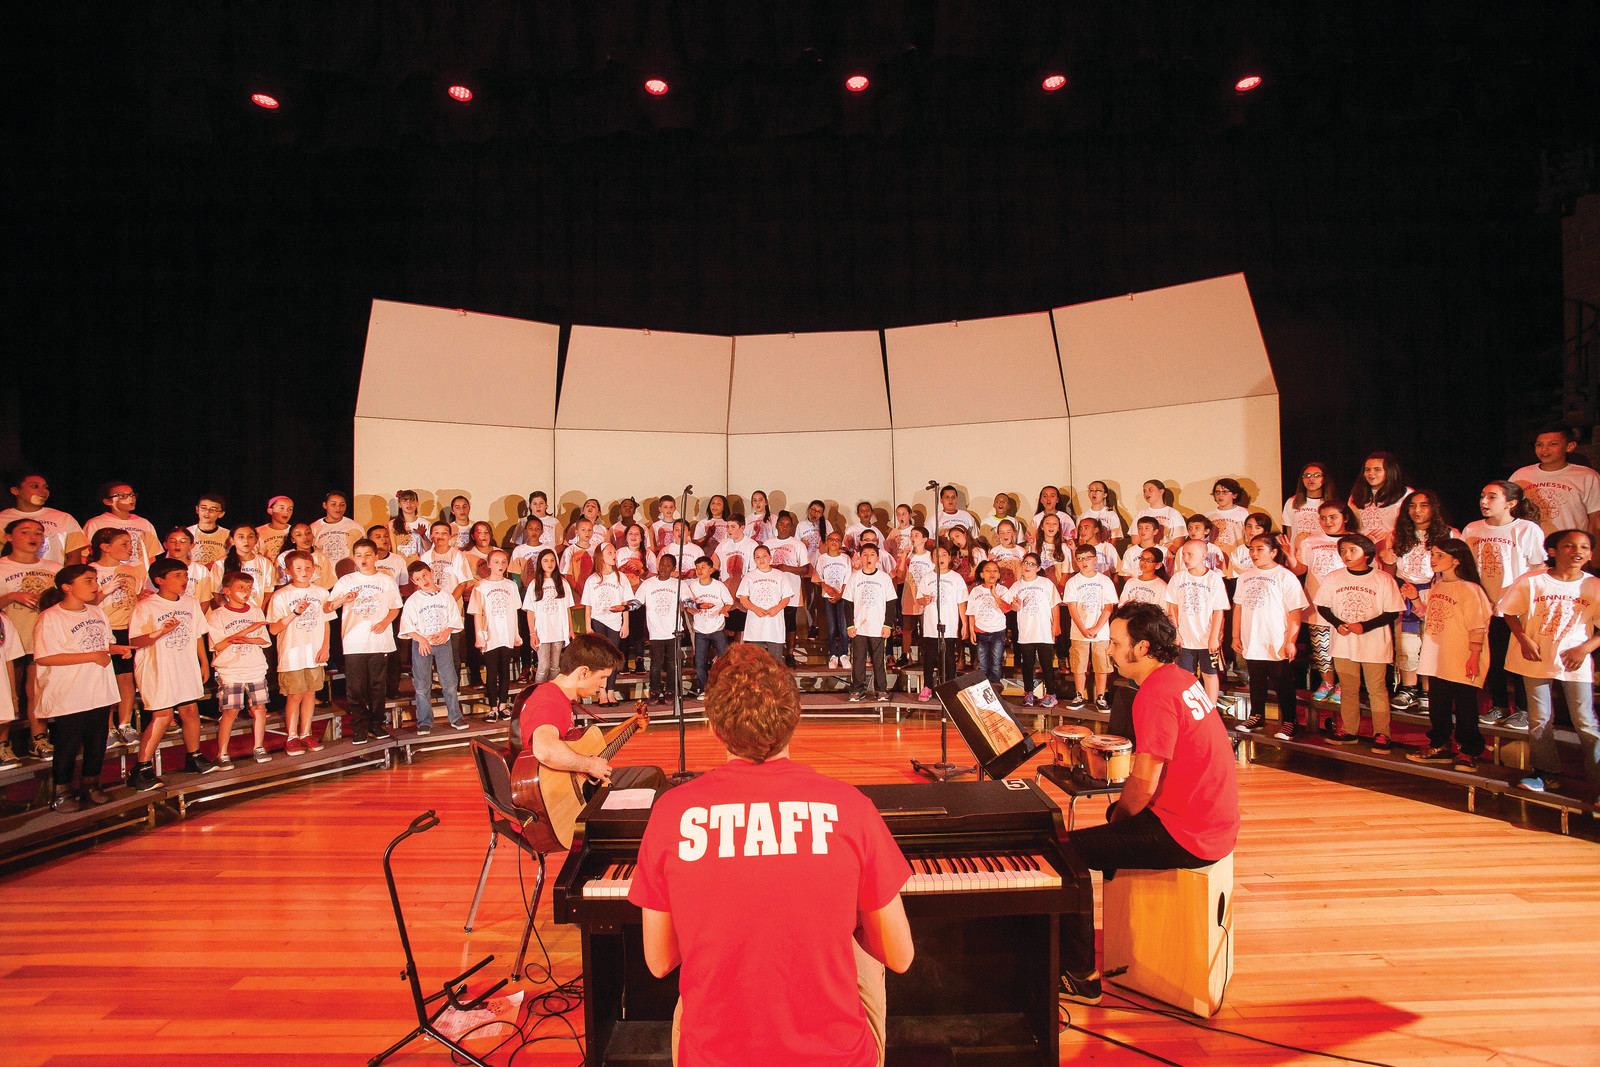 The East Providence Kids Rock Chorus brings pop music and attitude to their performances